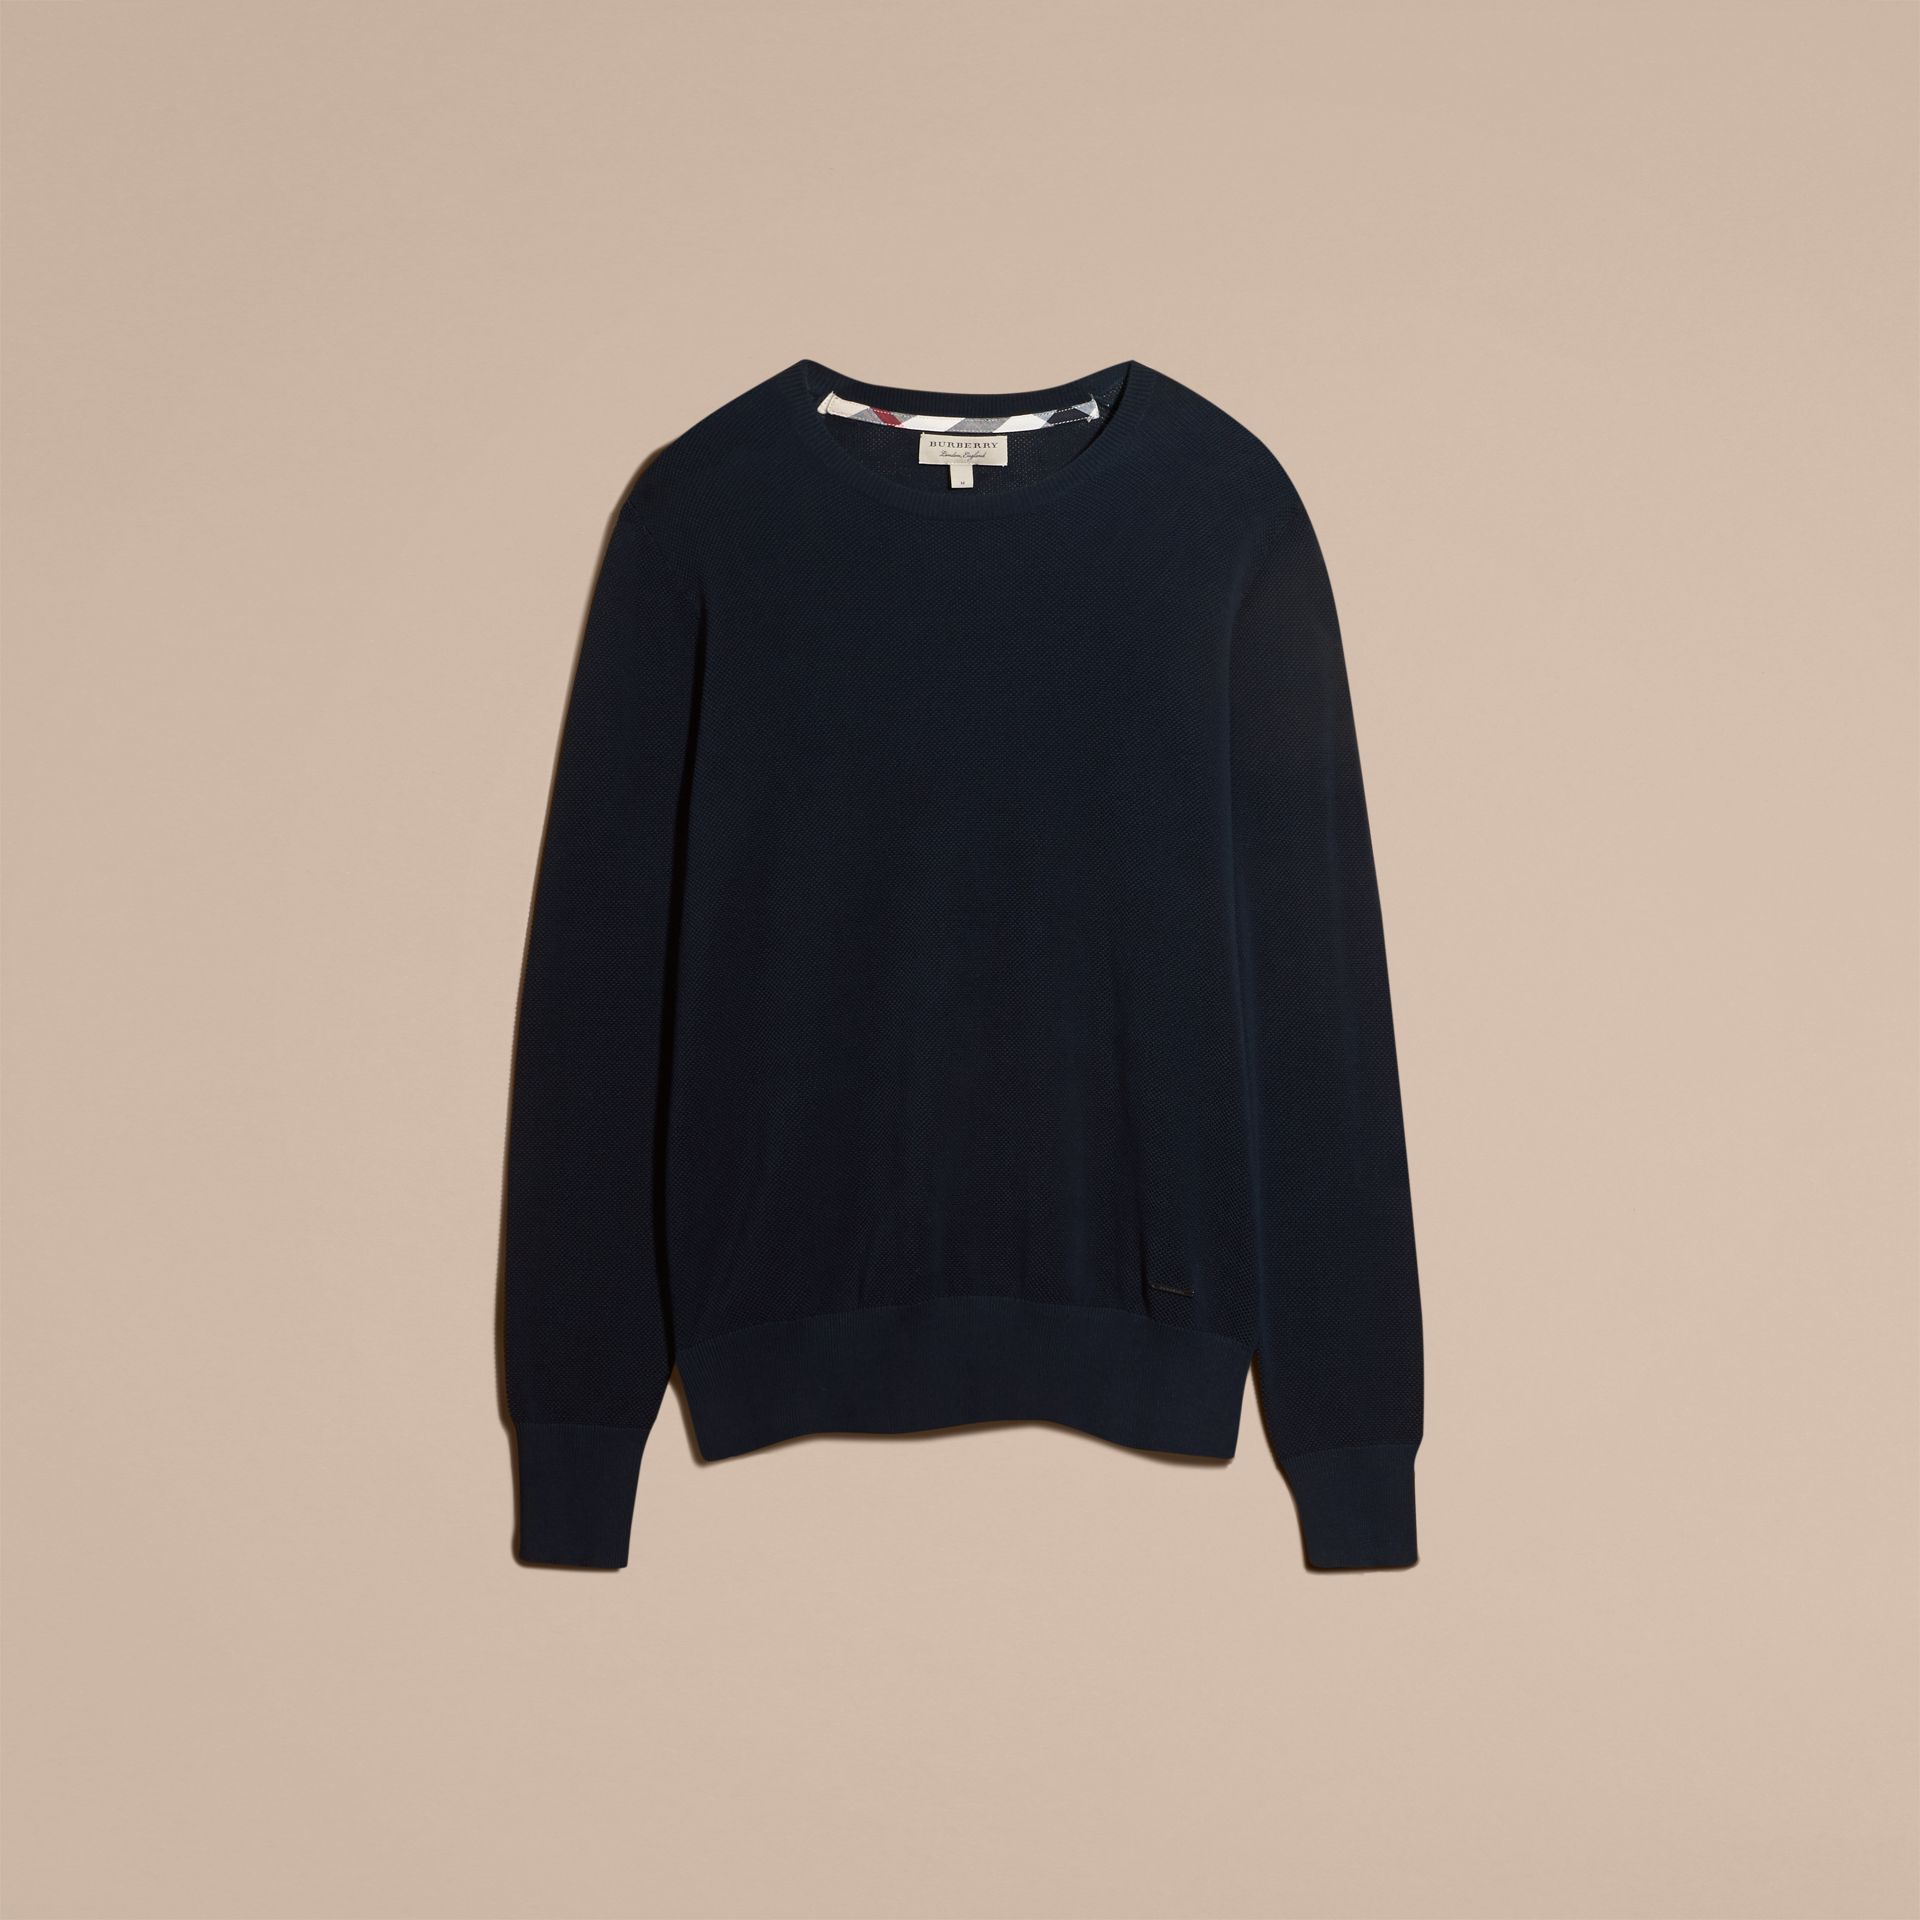 Crew Neck Textured Cotton Sweater in Navy - Men | Burberry - gallery image 3